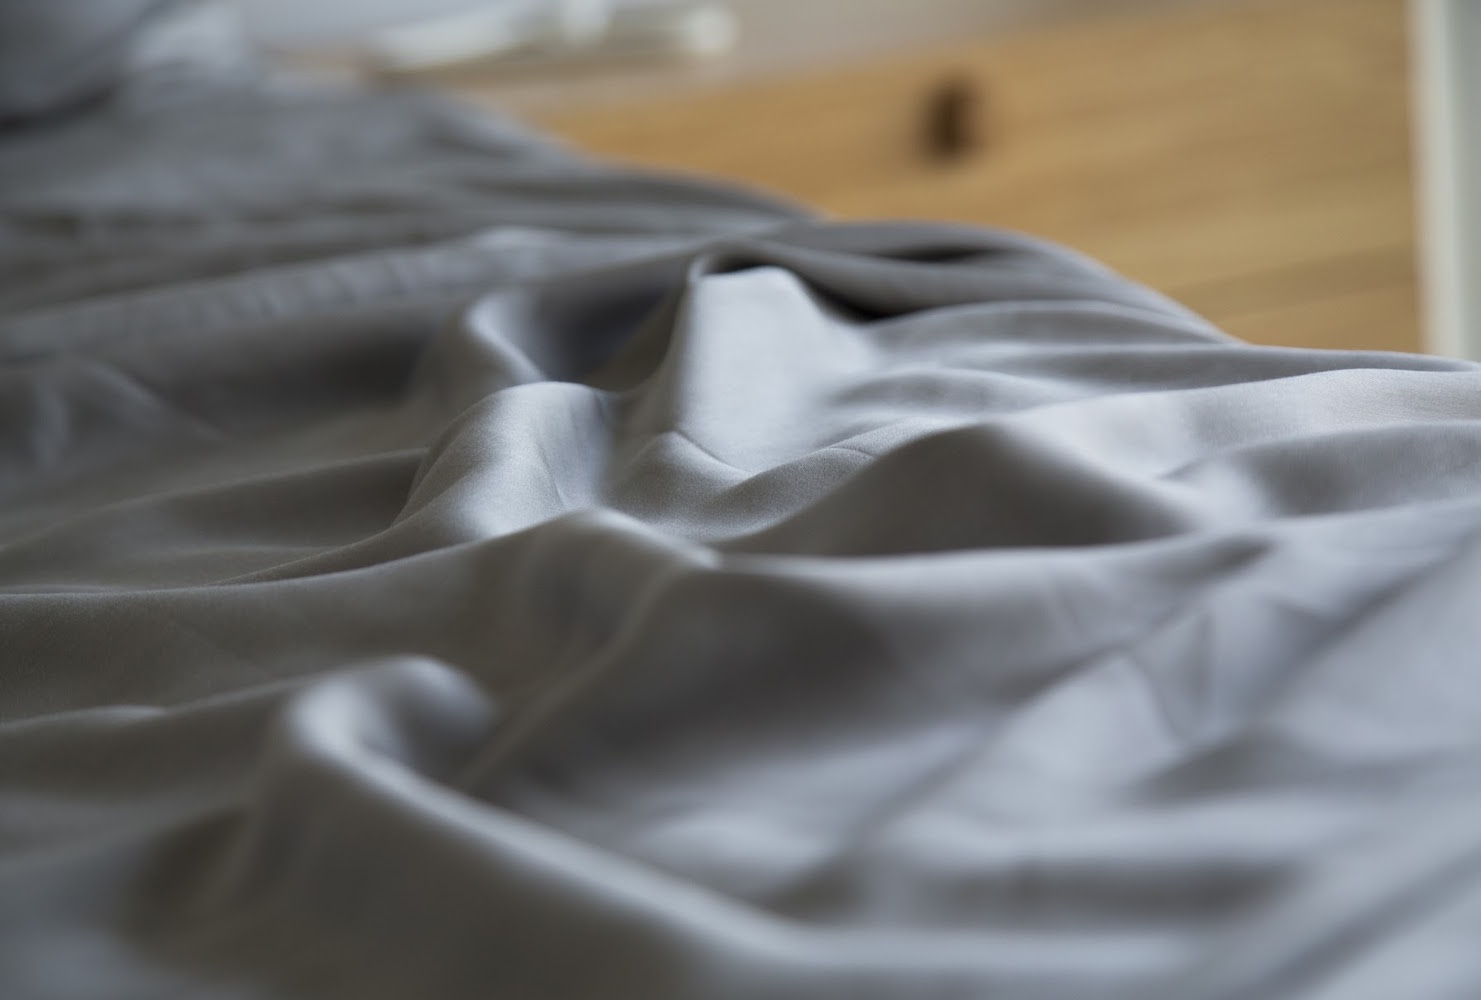 Bacteria and Odour Control Bamboo Charcoal Bedding